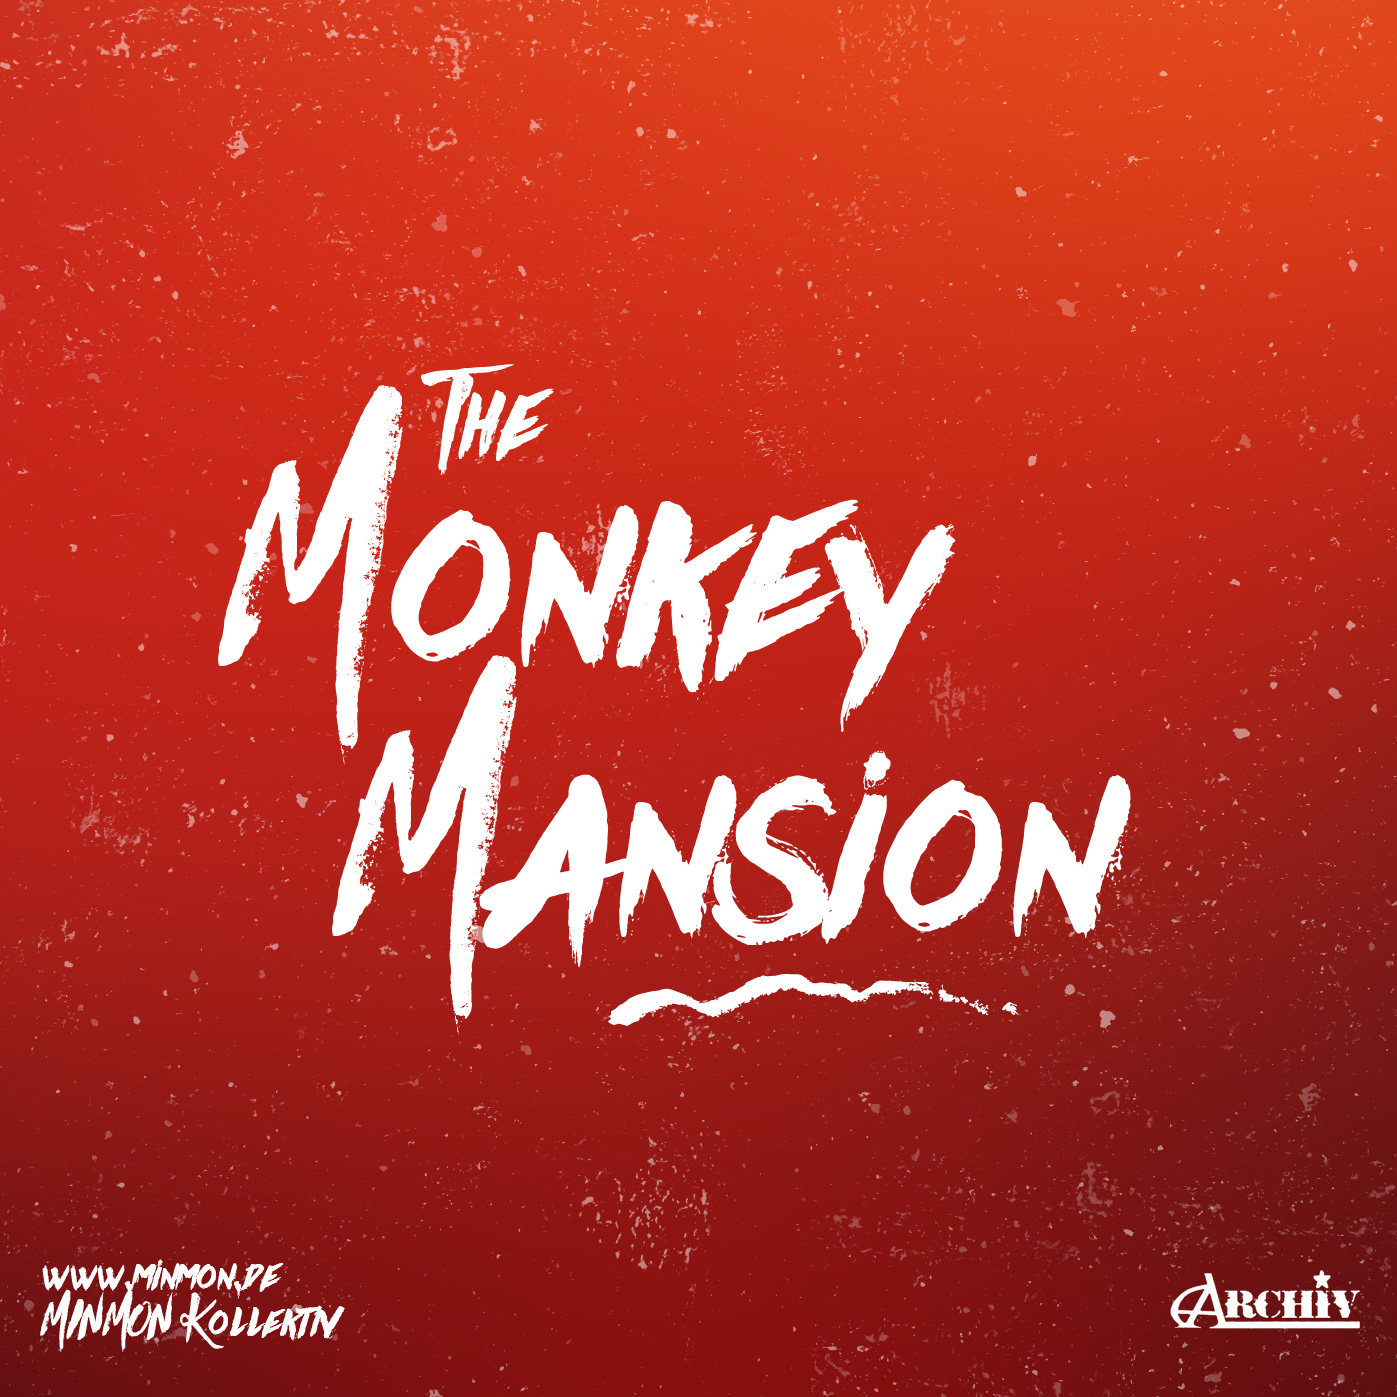 10.04.15 Monkey Mansion @ Archiv